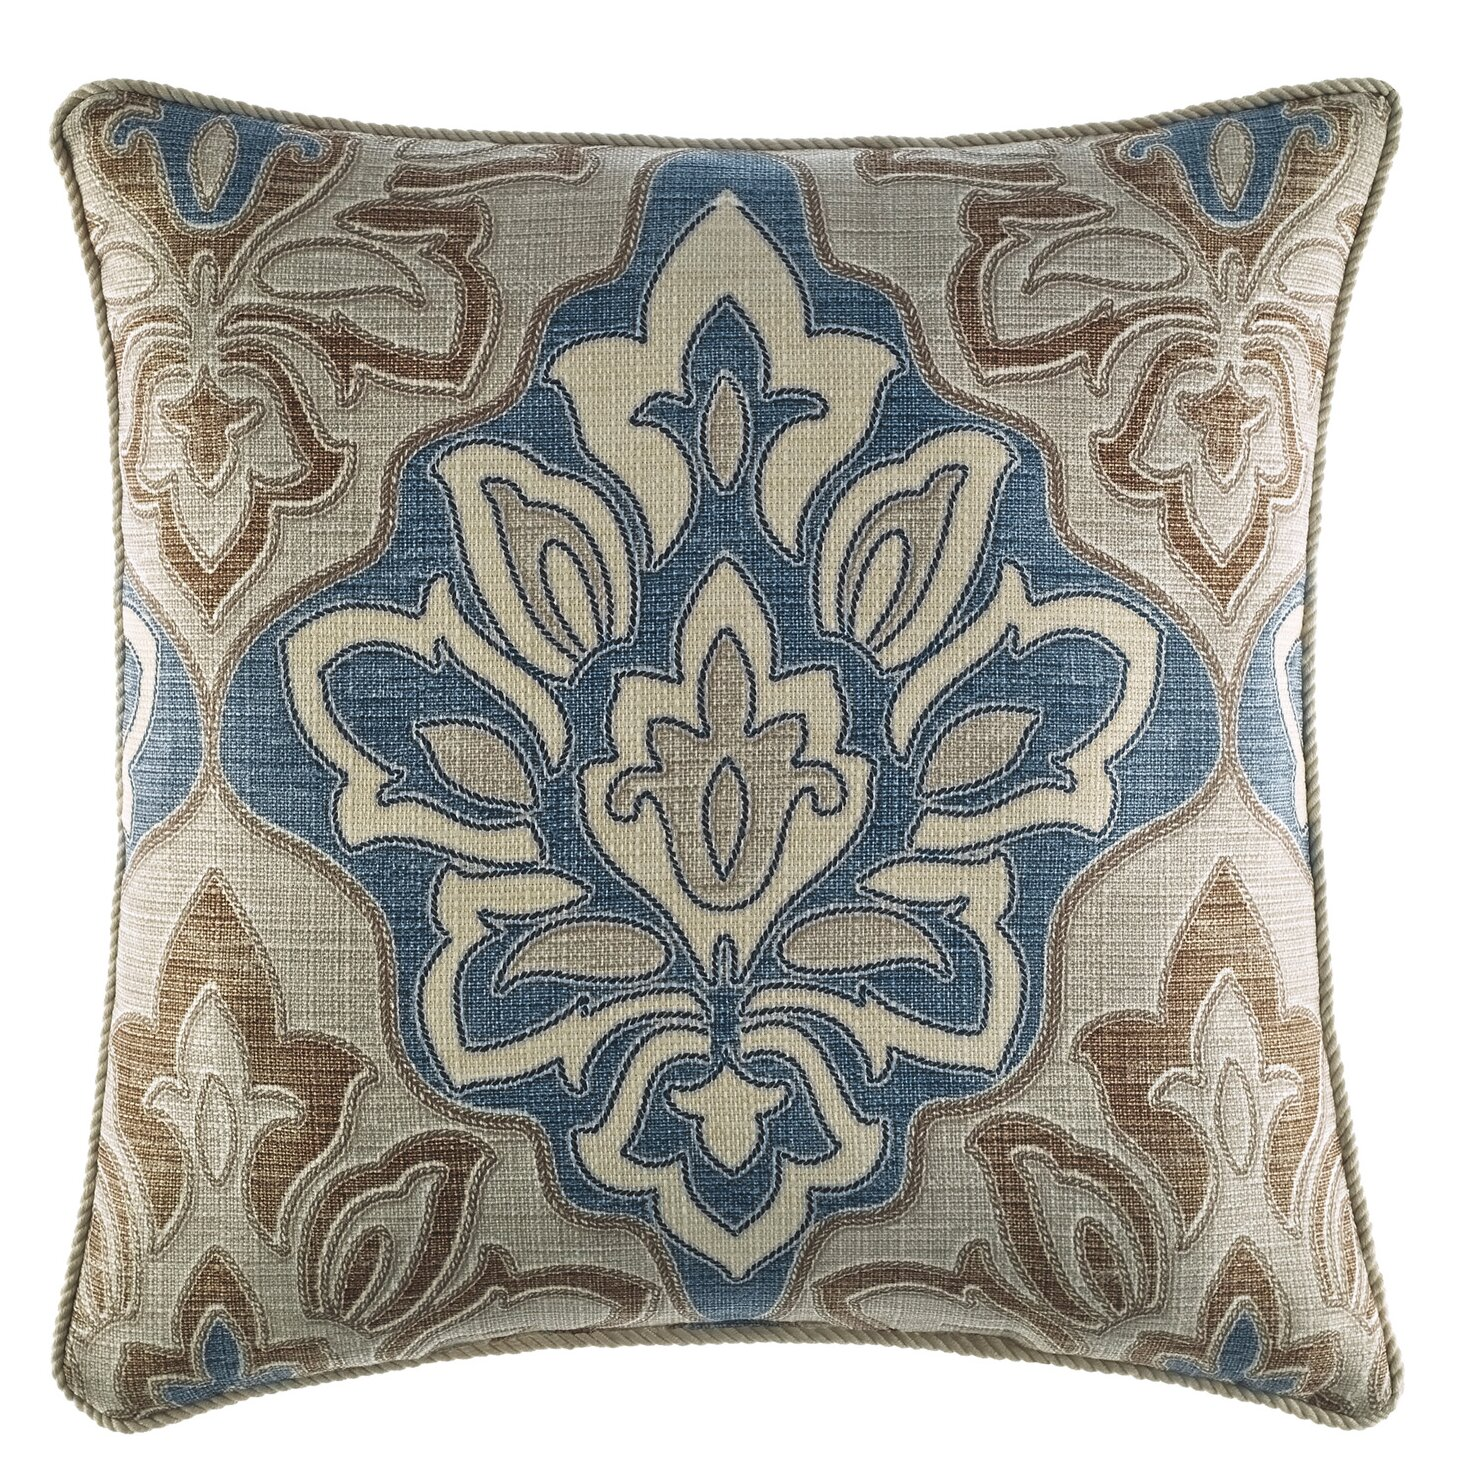 Wayfair Blue Decorative Pillows : Croscill Captain s Quarters Throw Pillow & Reviews Wayfair